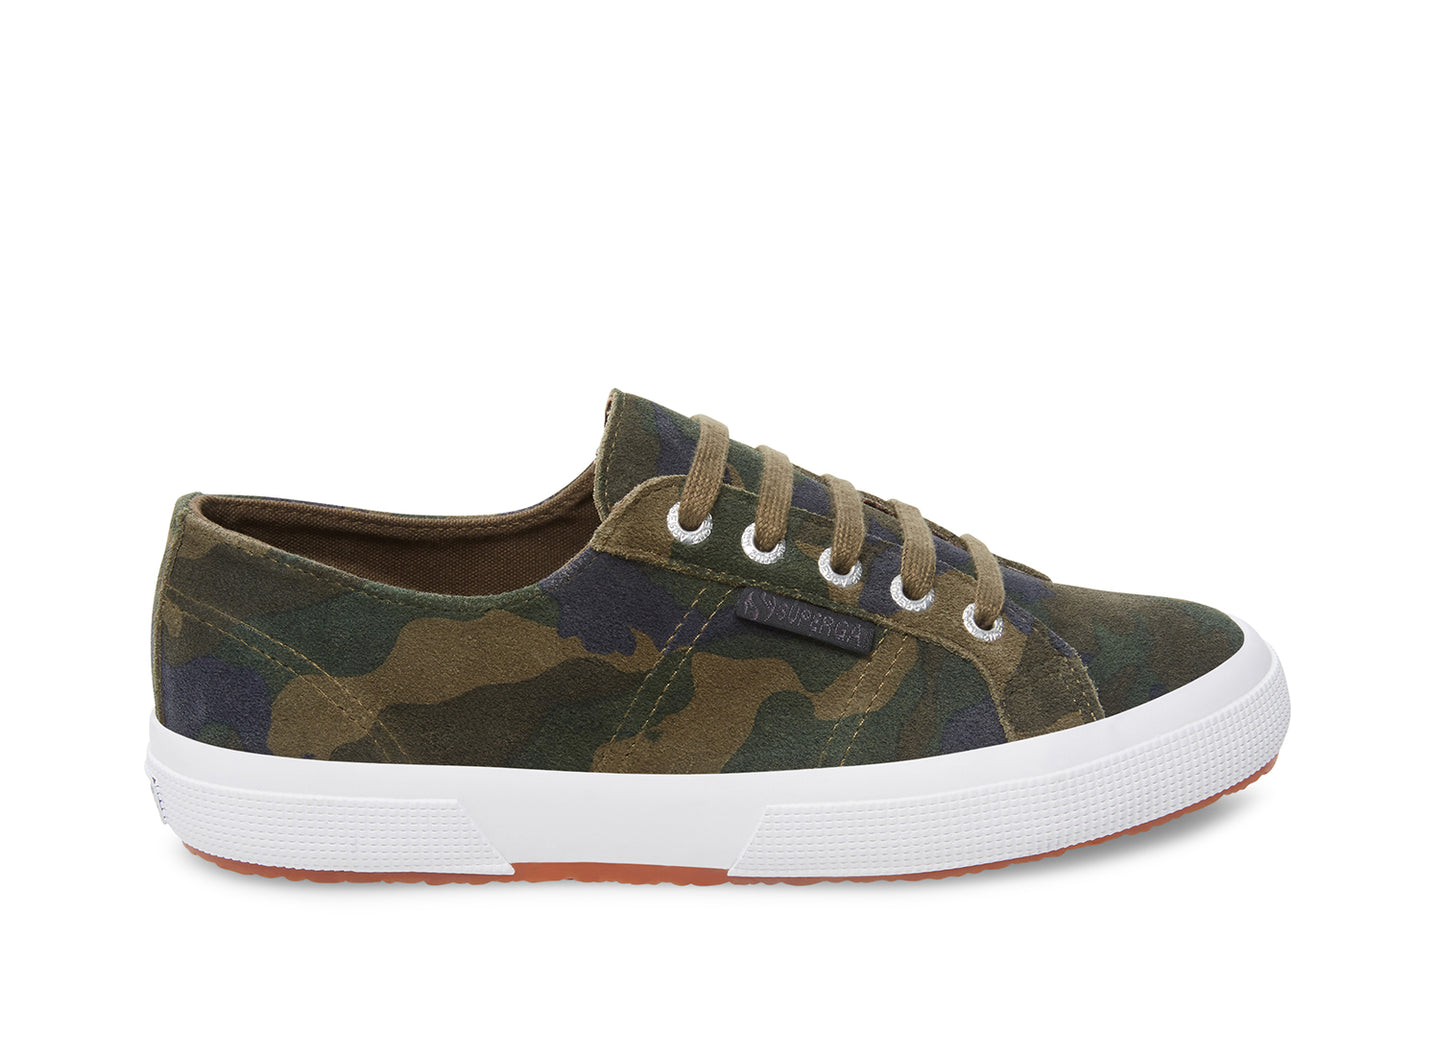 2750-SUECAMOW CAMOUFLAGE - Women's